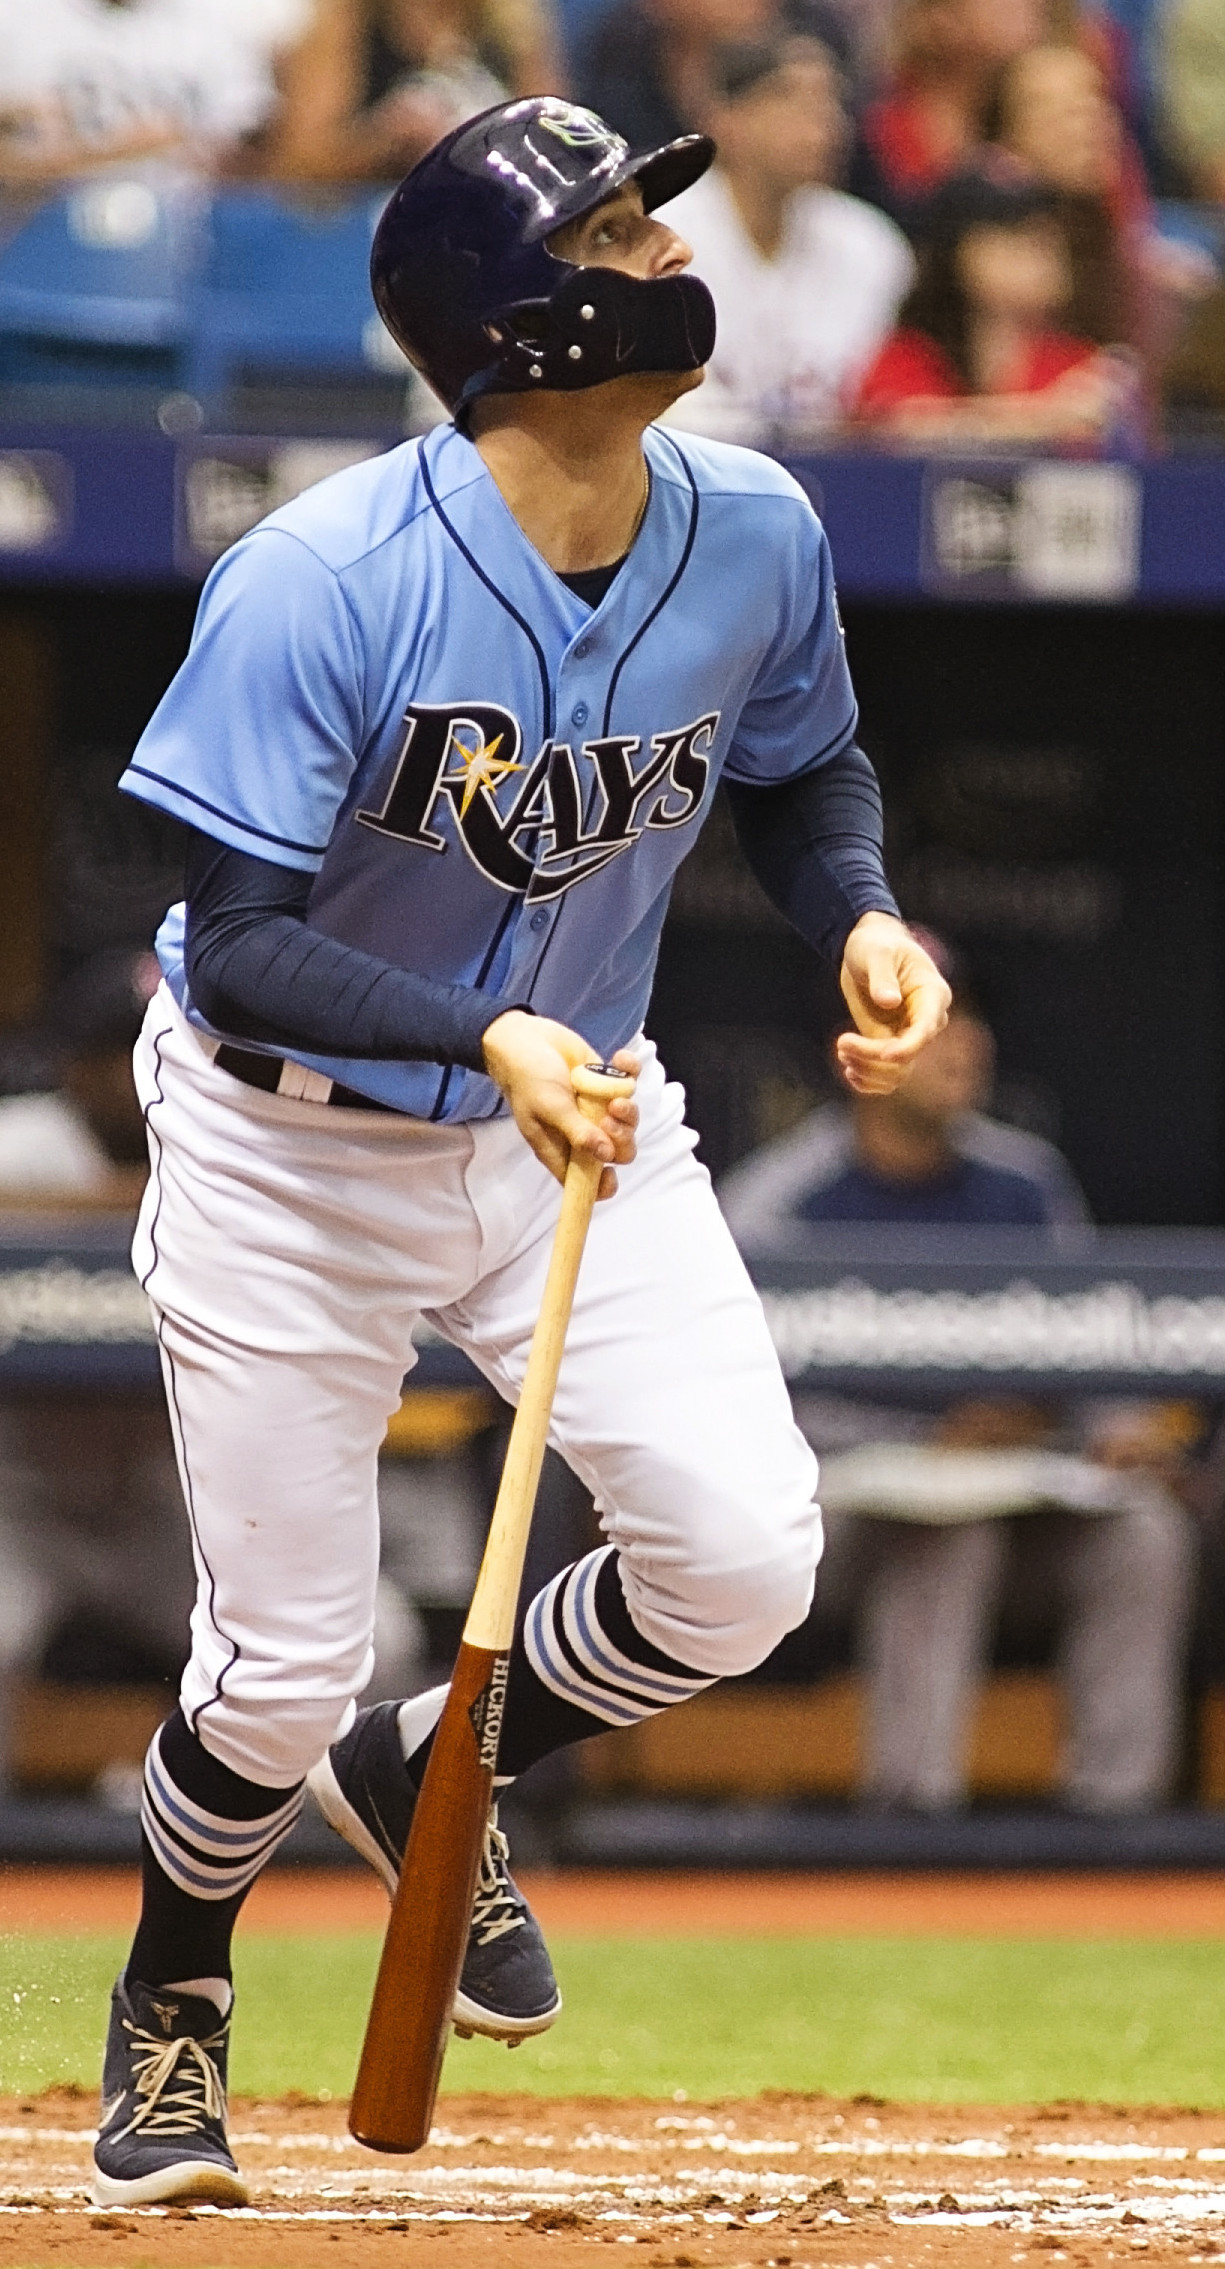 Miller gave the Rays their early lead./CARMEN MANDATO